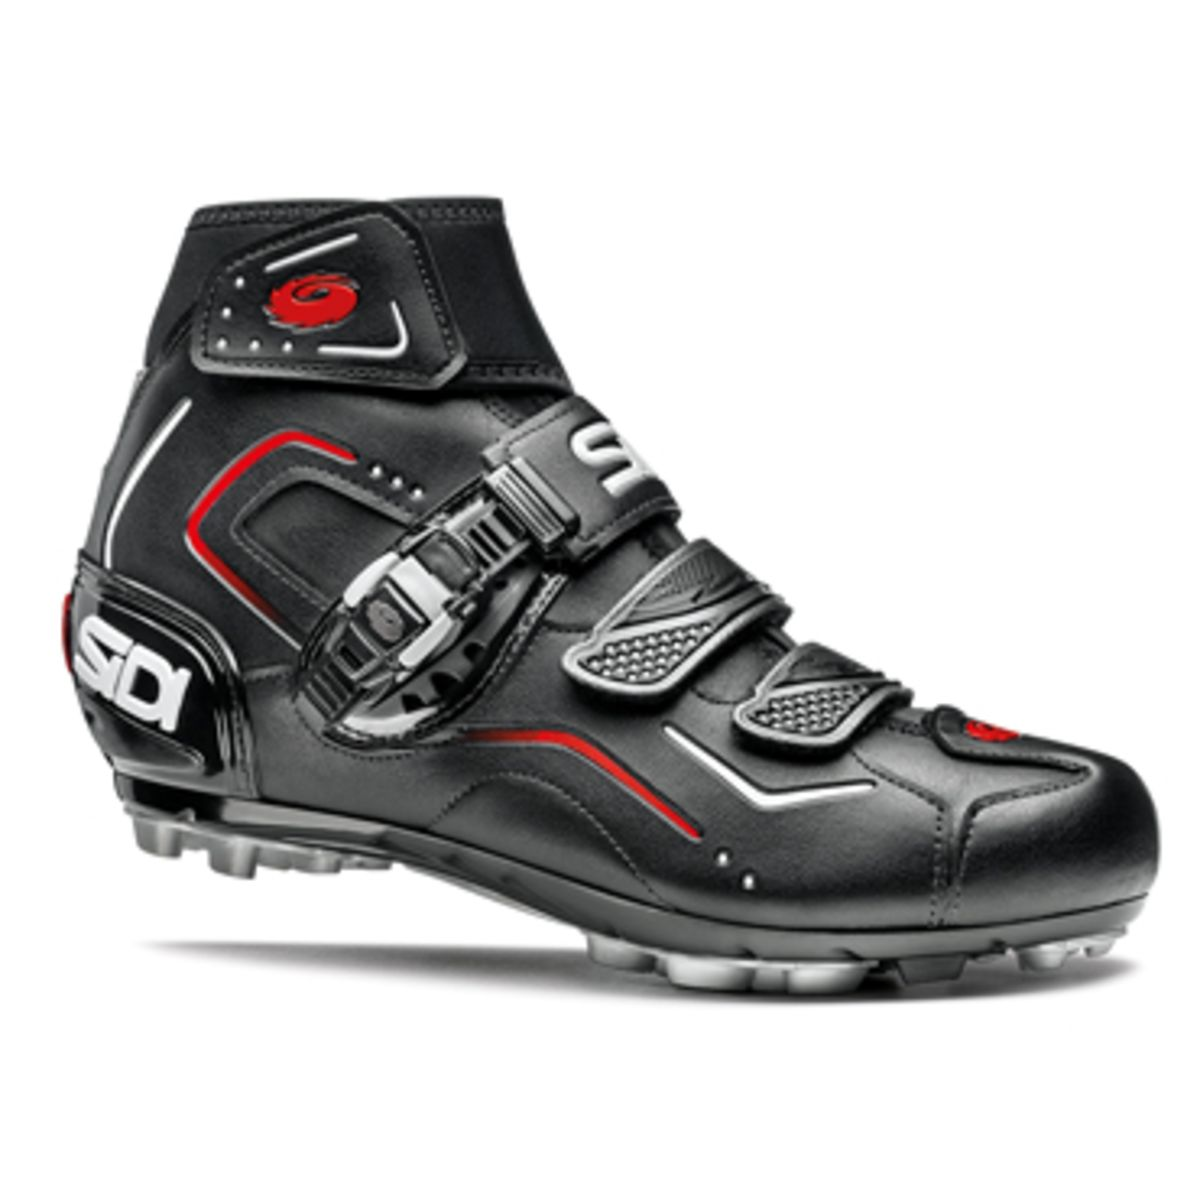 BREEZE RAIN winter MTB shoes